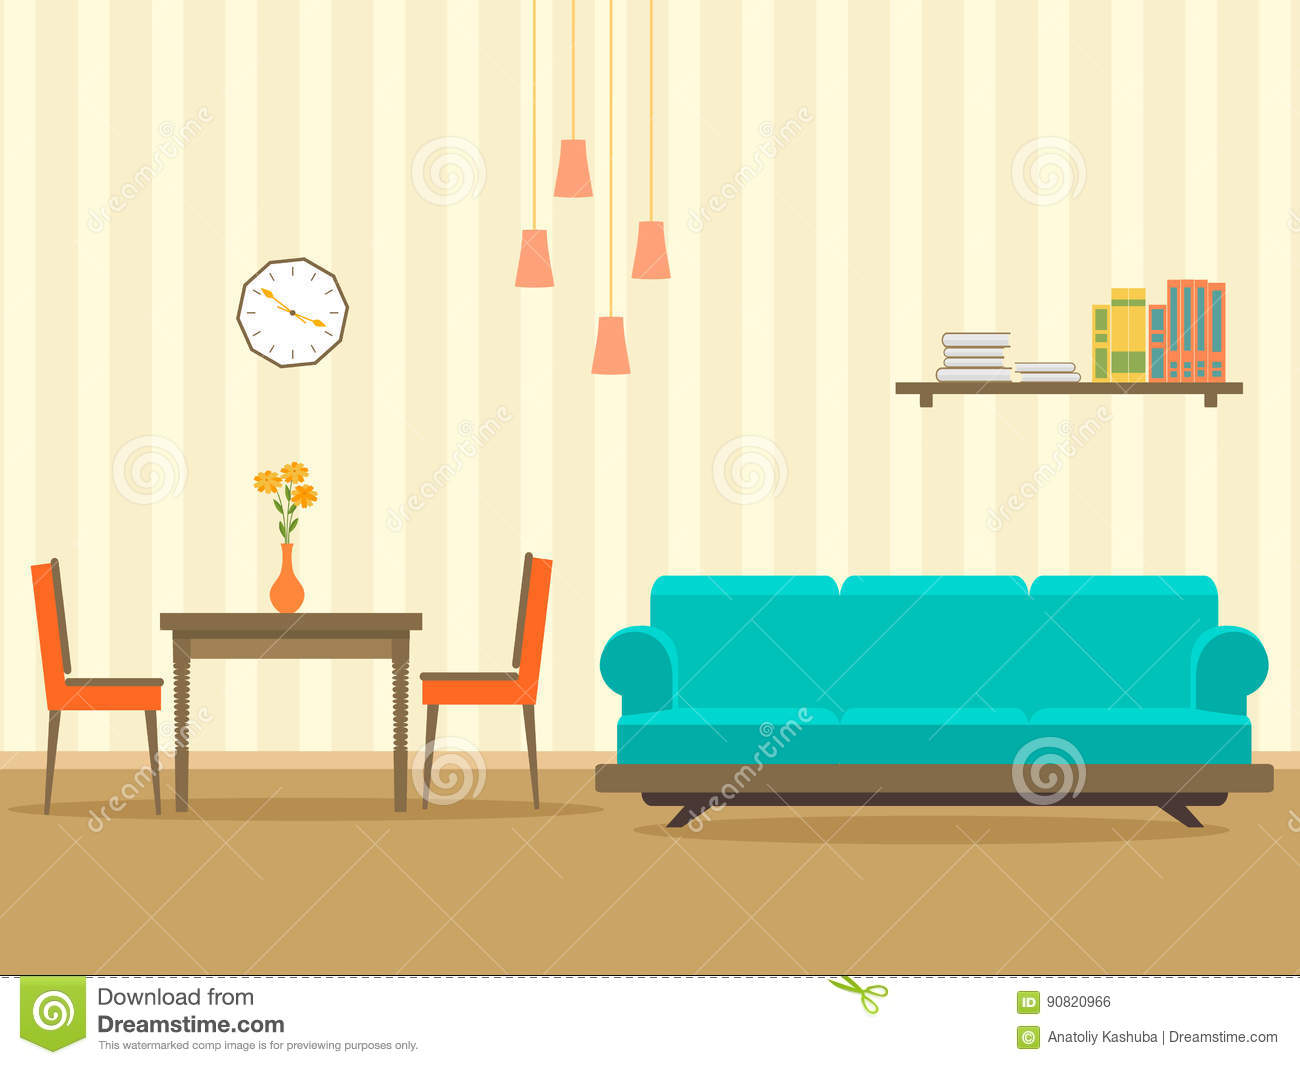 Interior design in flat style of living room with furniture, sofa, , table, bookshelf, flower, lamp and clock.